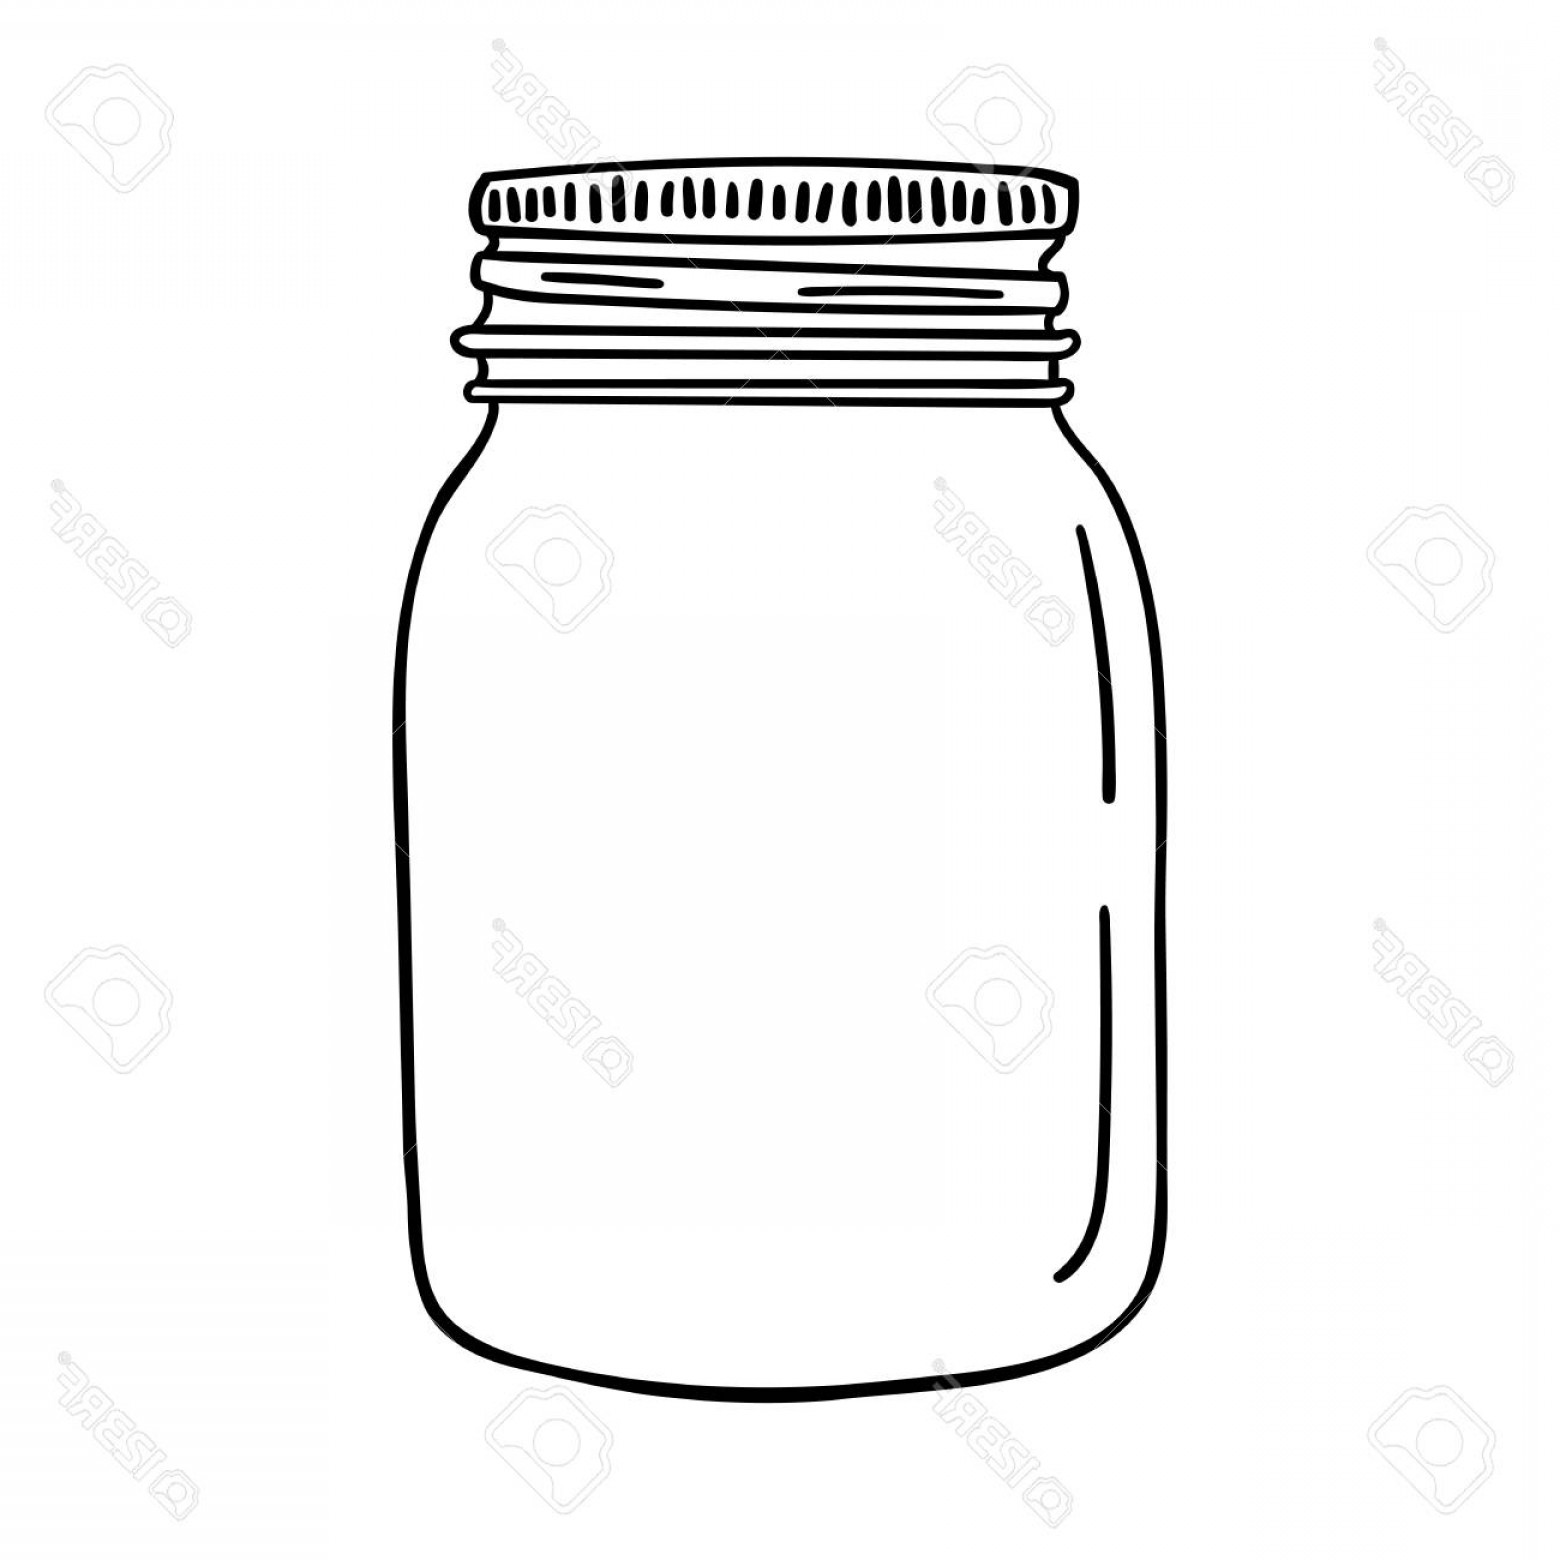 Mason Jar Outline Vector: Photostock Vector Hand Drawn Mason Jar Contour Sketch Vector Illustration